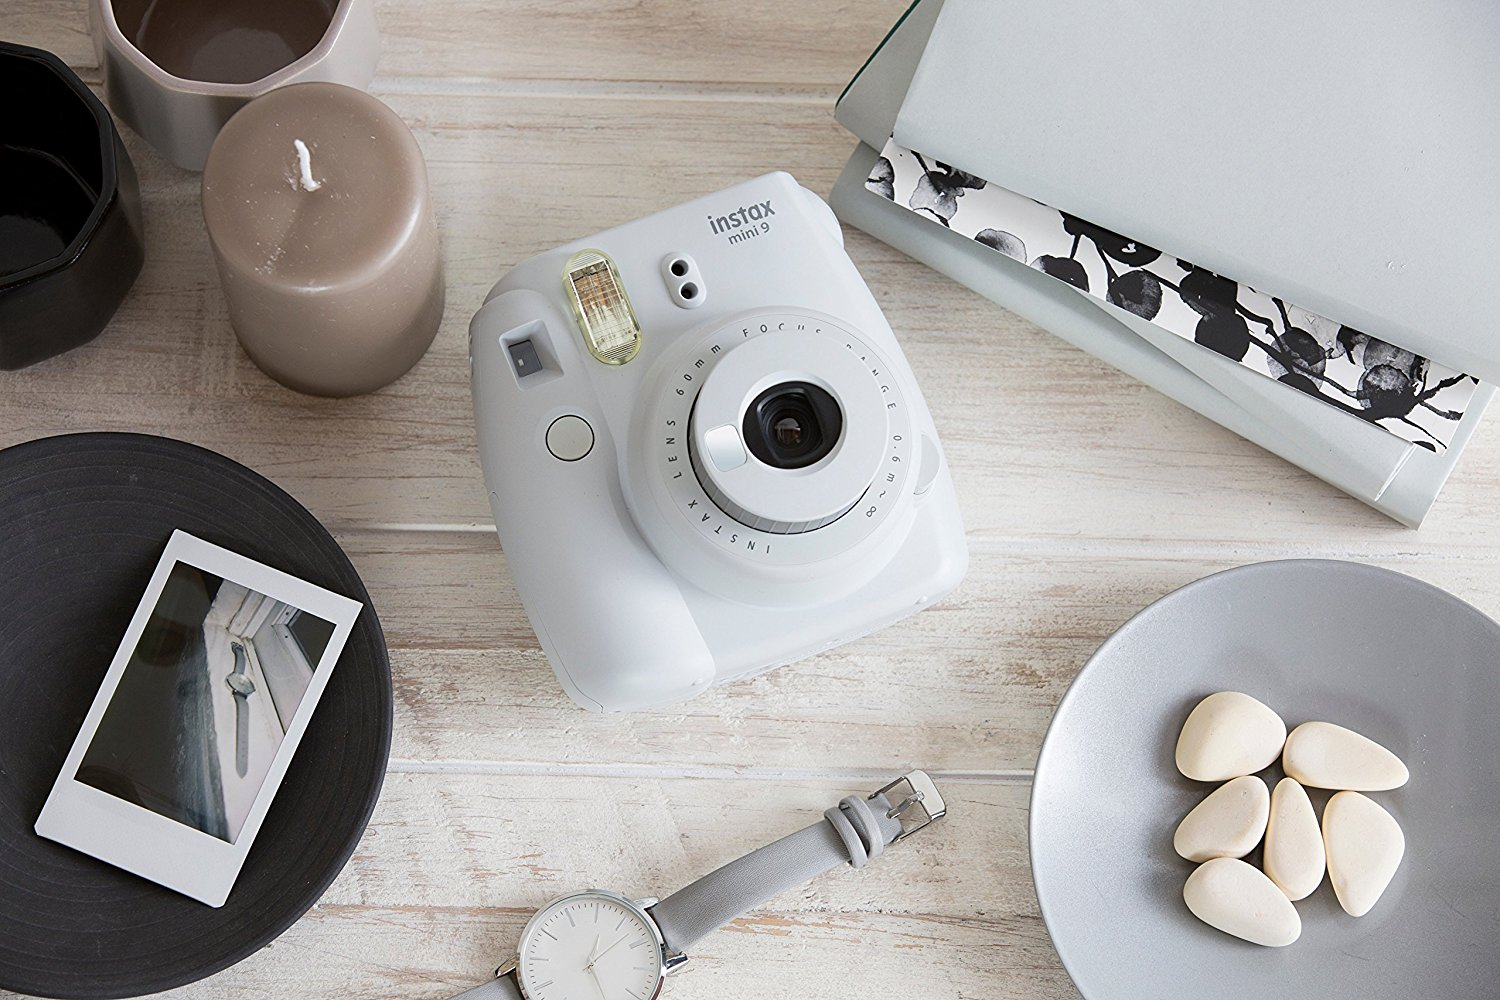 Fujifilm - Instax Mini 9 - smoky white